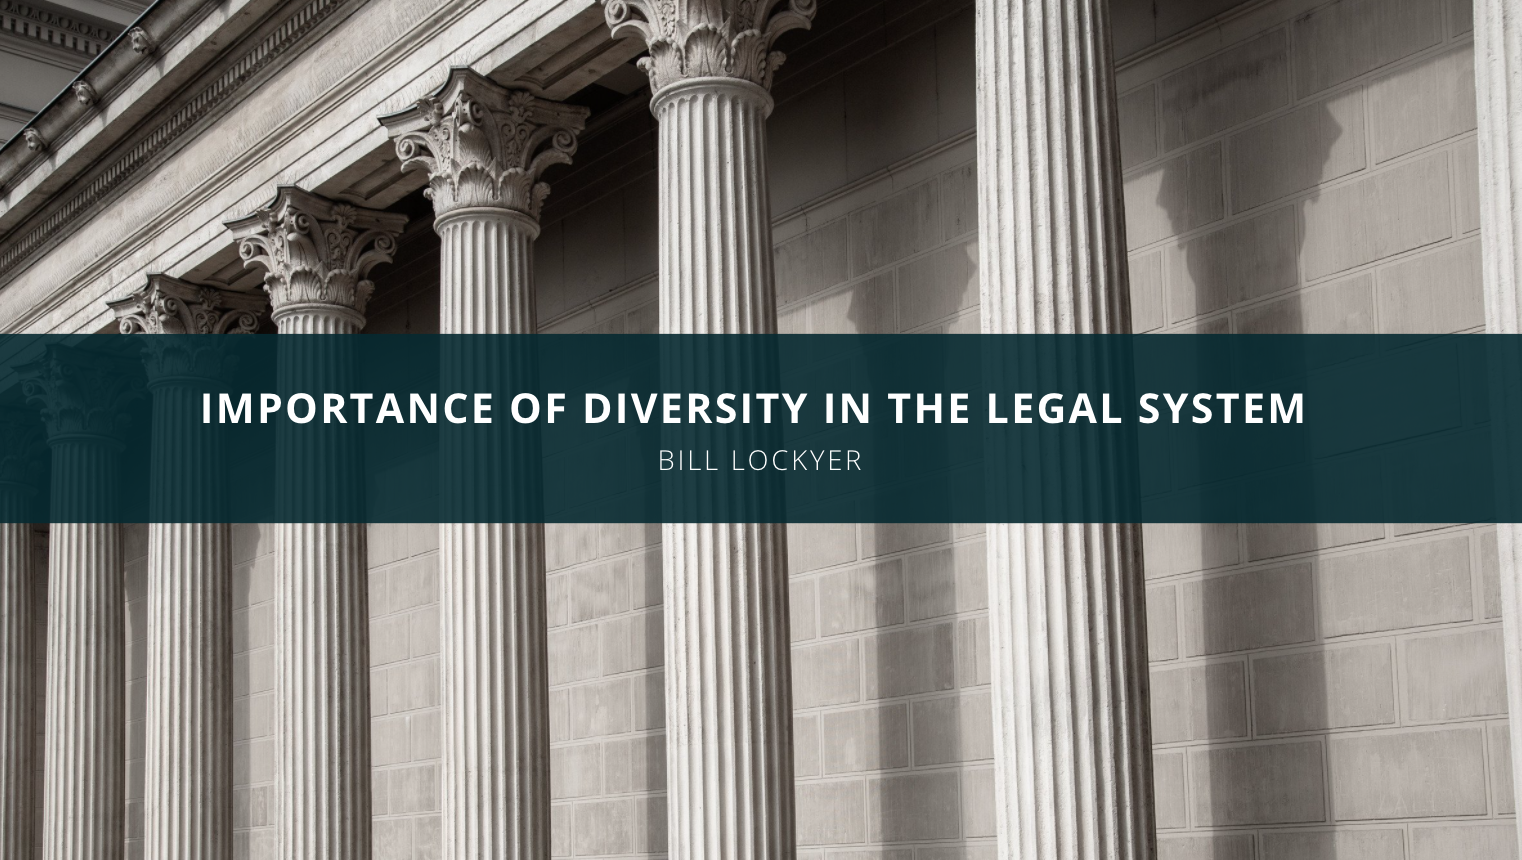 Importance of Diversity in the Legal System per Bill Lockyer